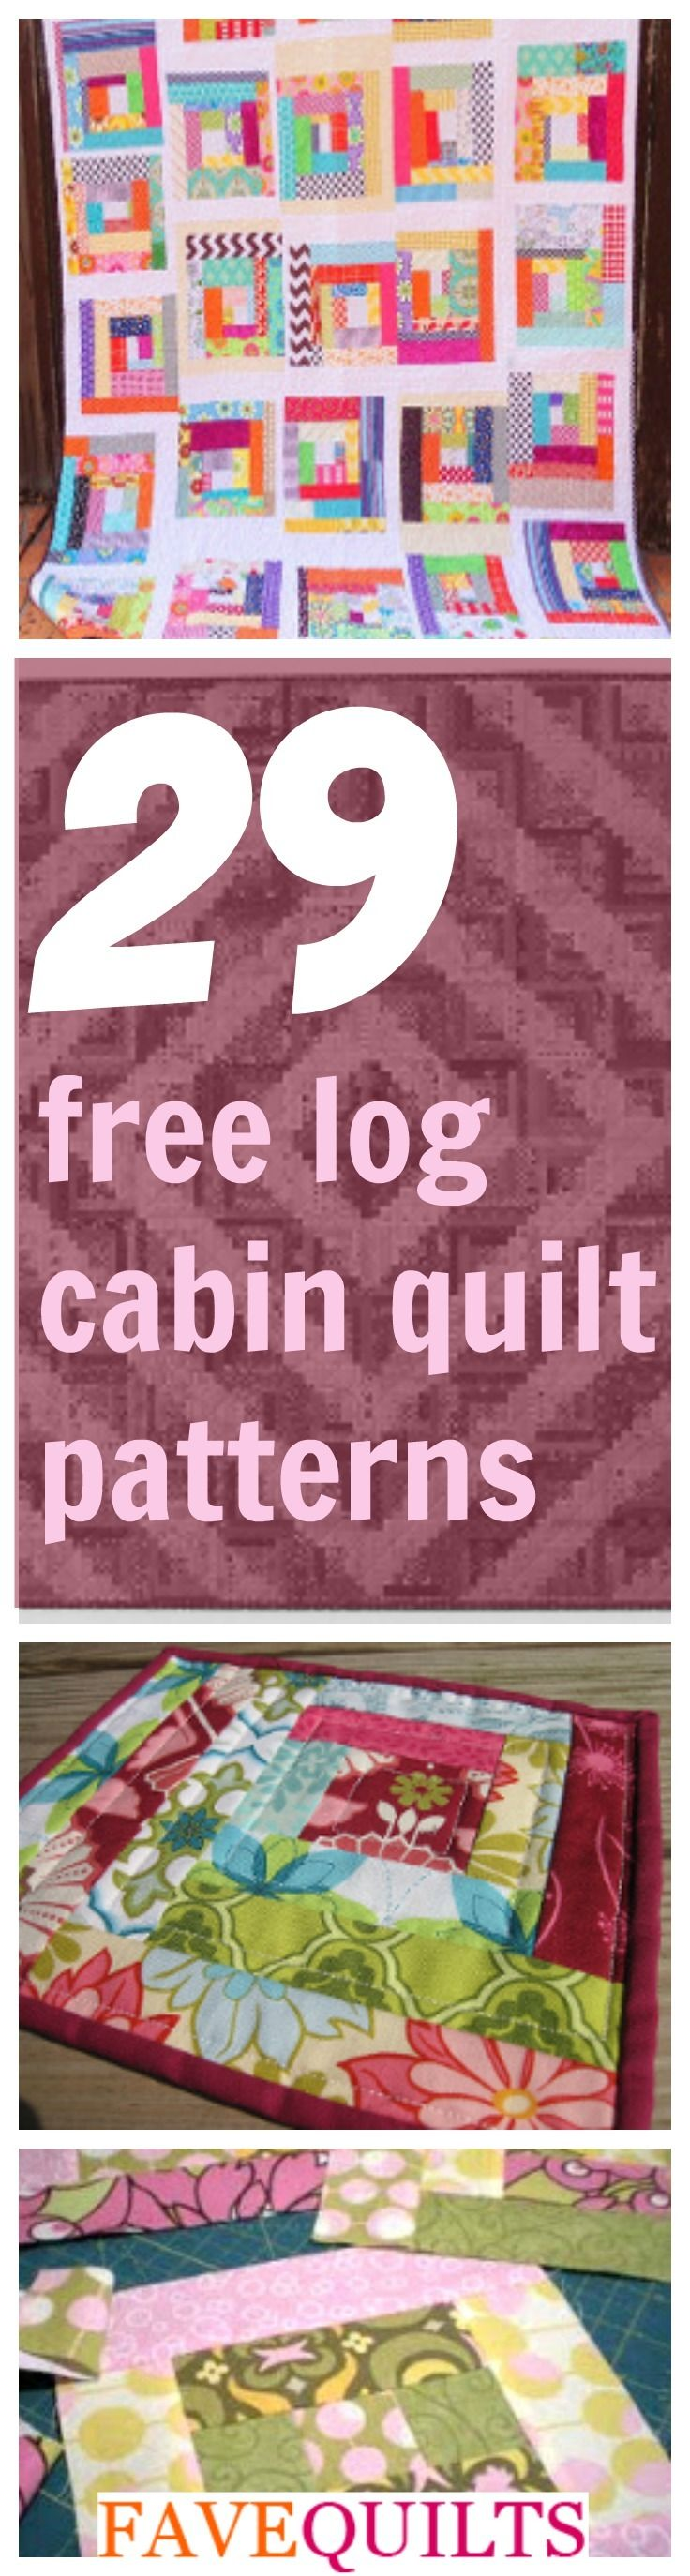 37 Free Log Cabin Quilt Patterns | FaveQuilts.com